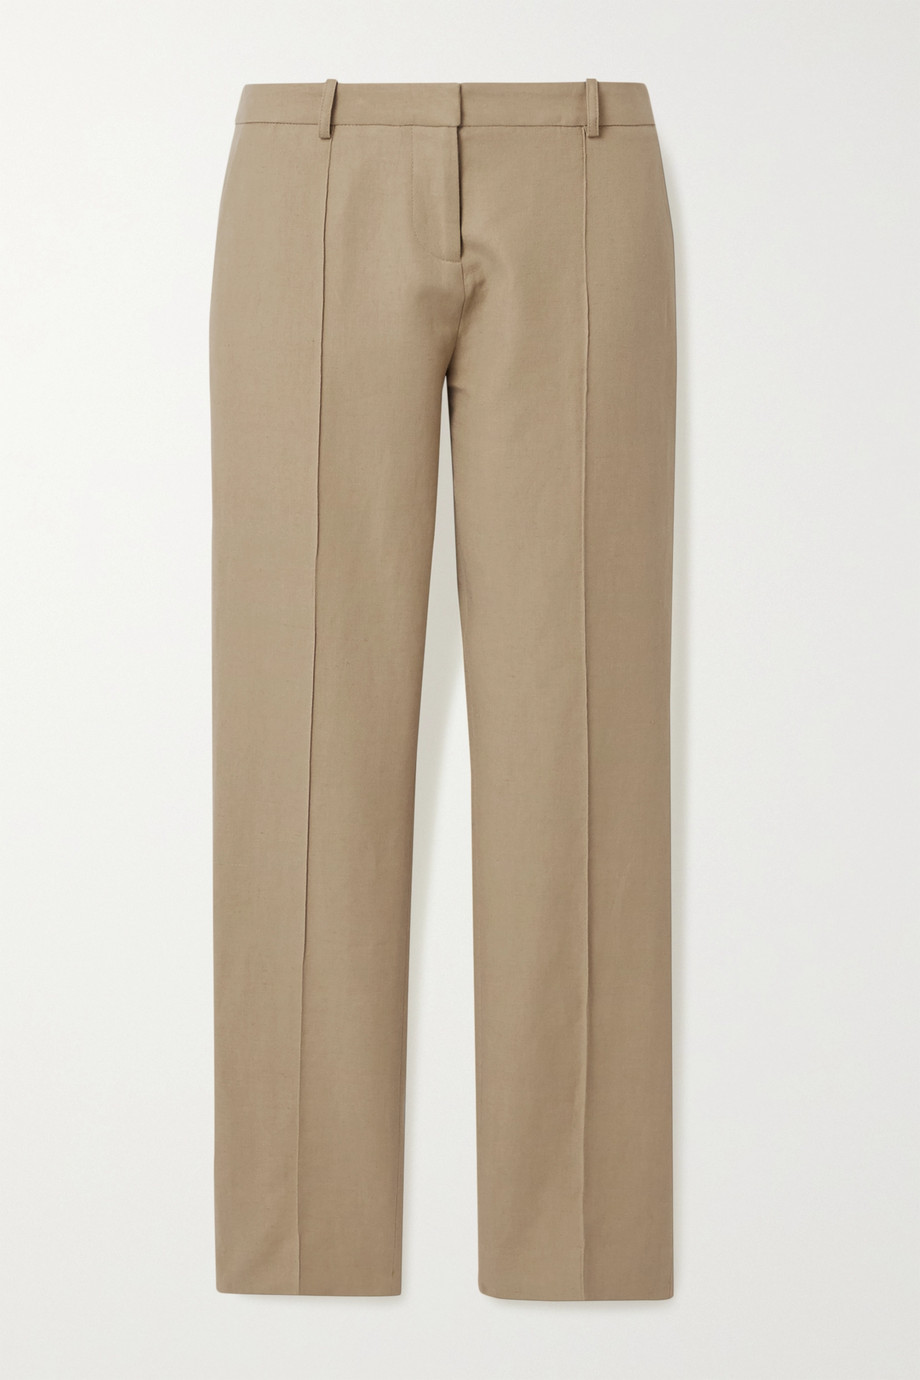 Vanessa Bruno Jame cotton-blend straight-leg pants